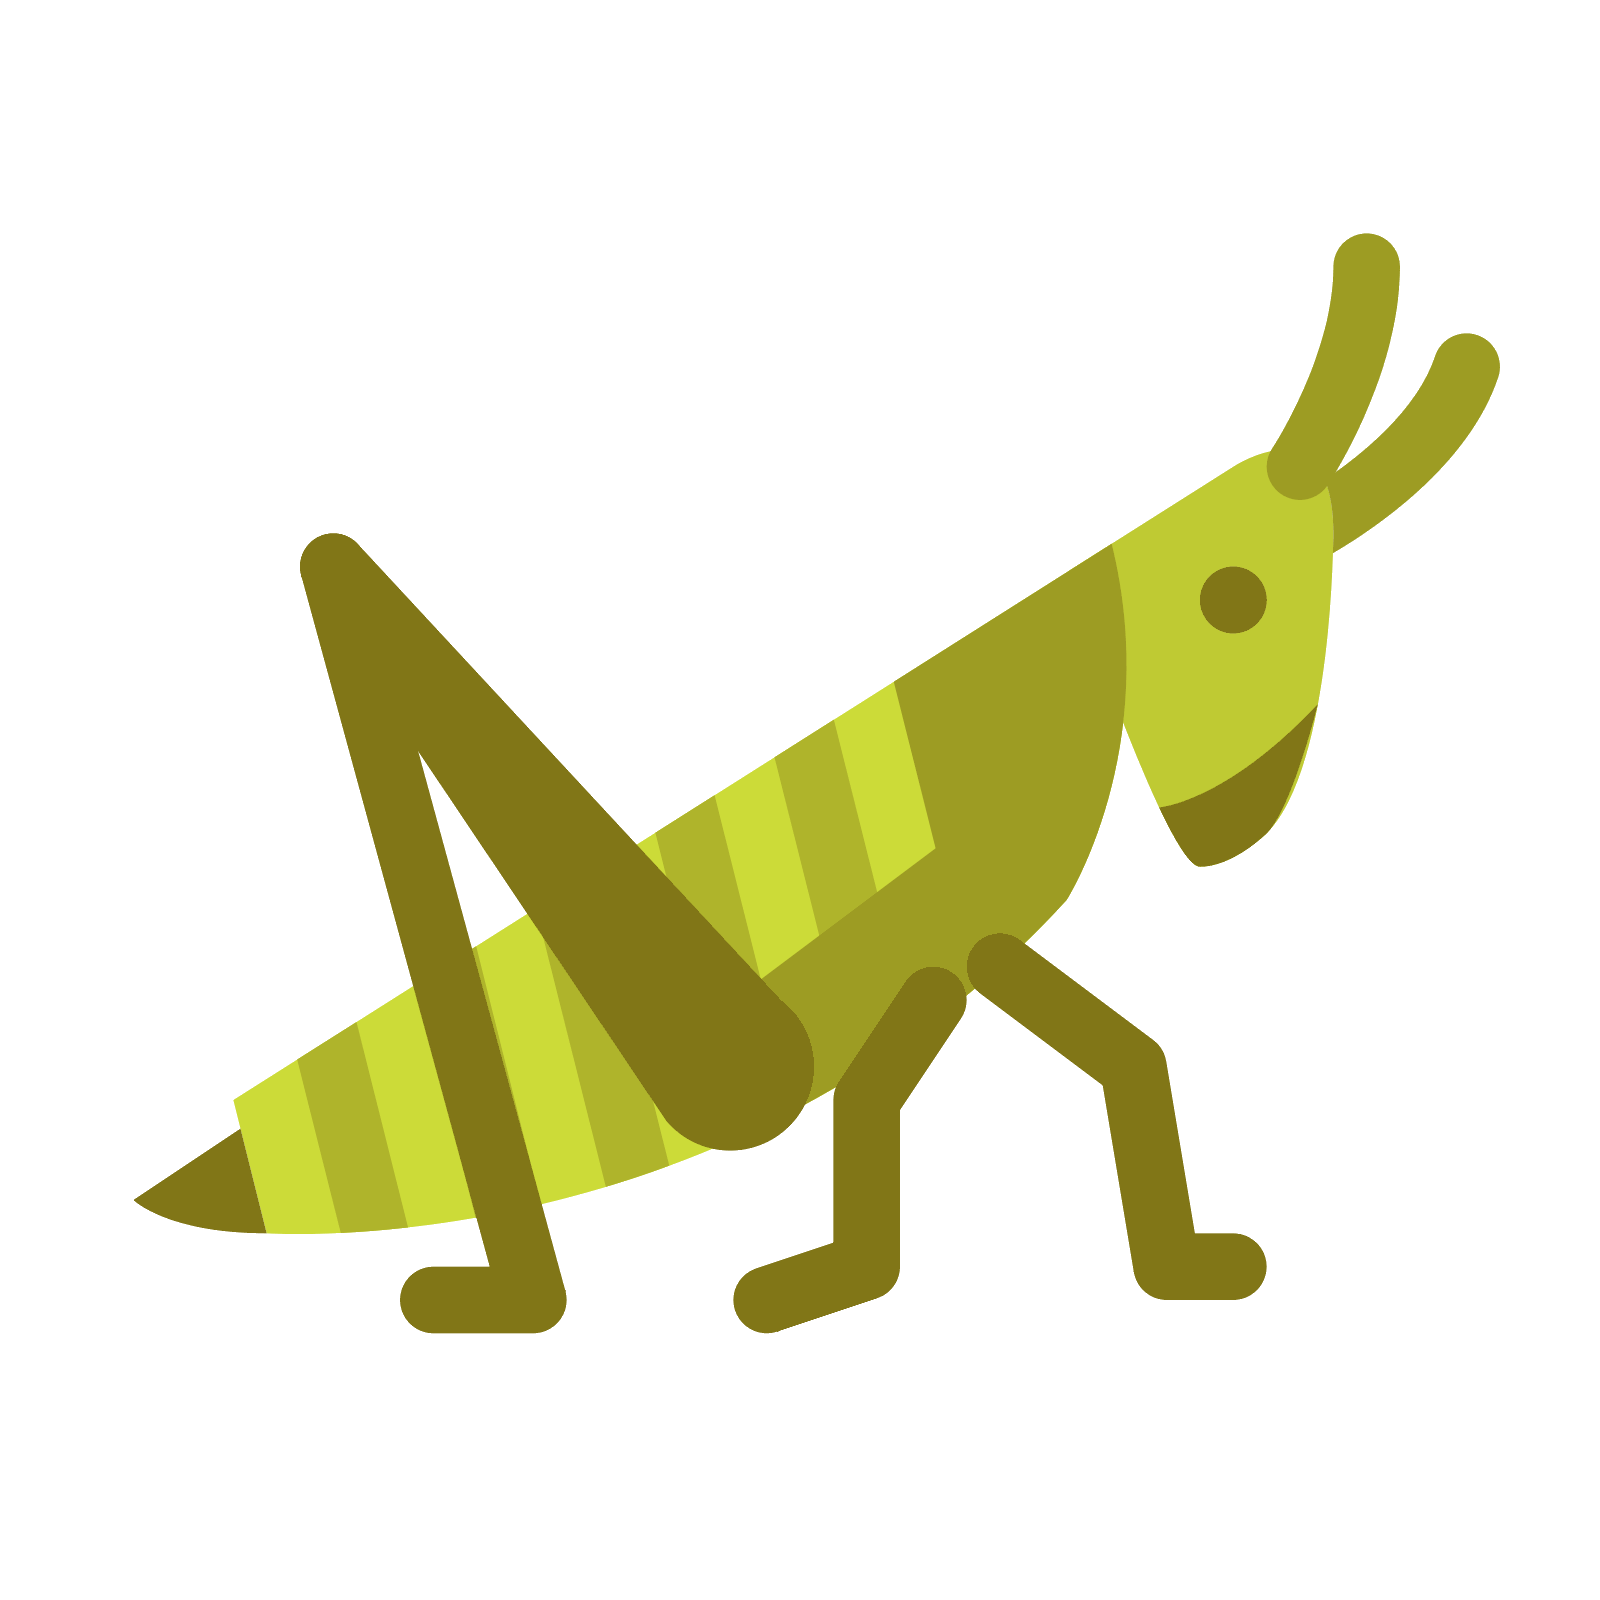 graphic free stock Grasshopper clipart page. Head free on dumielauxepices